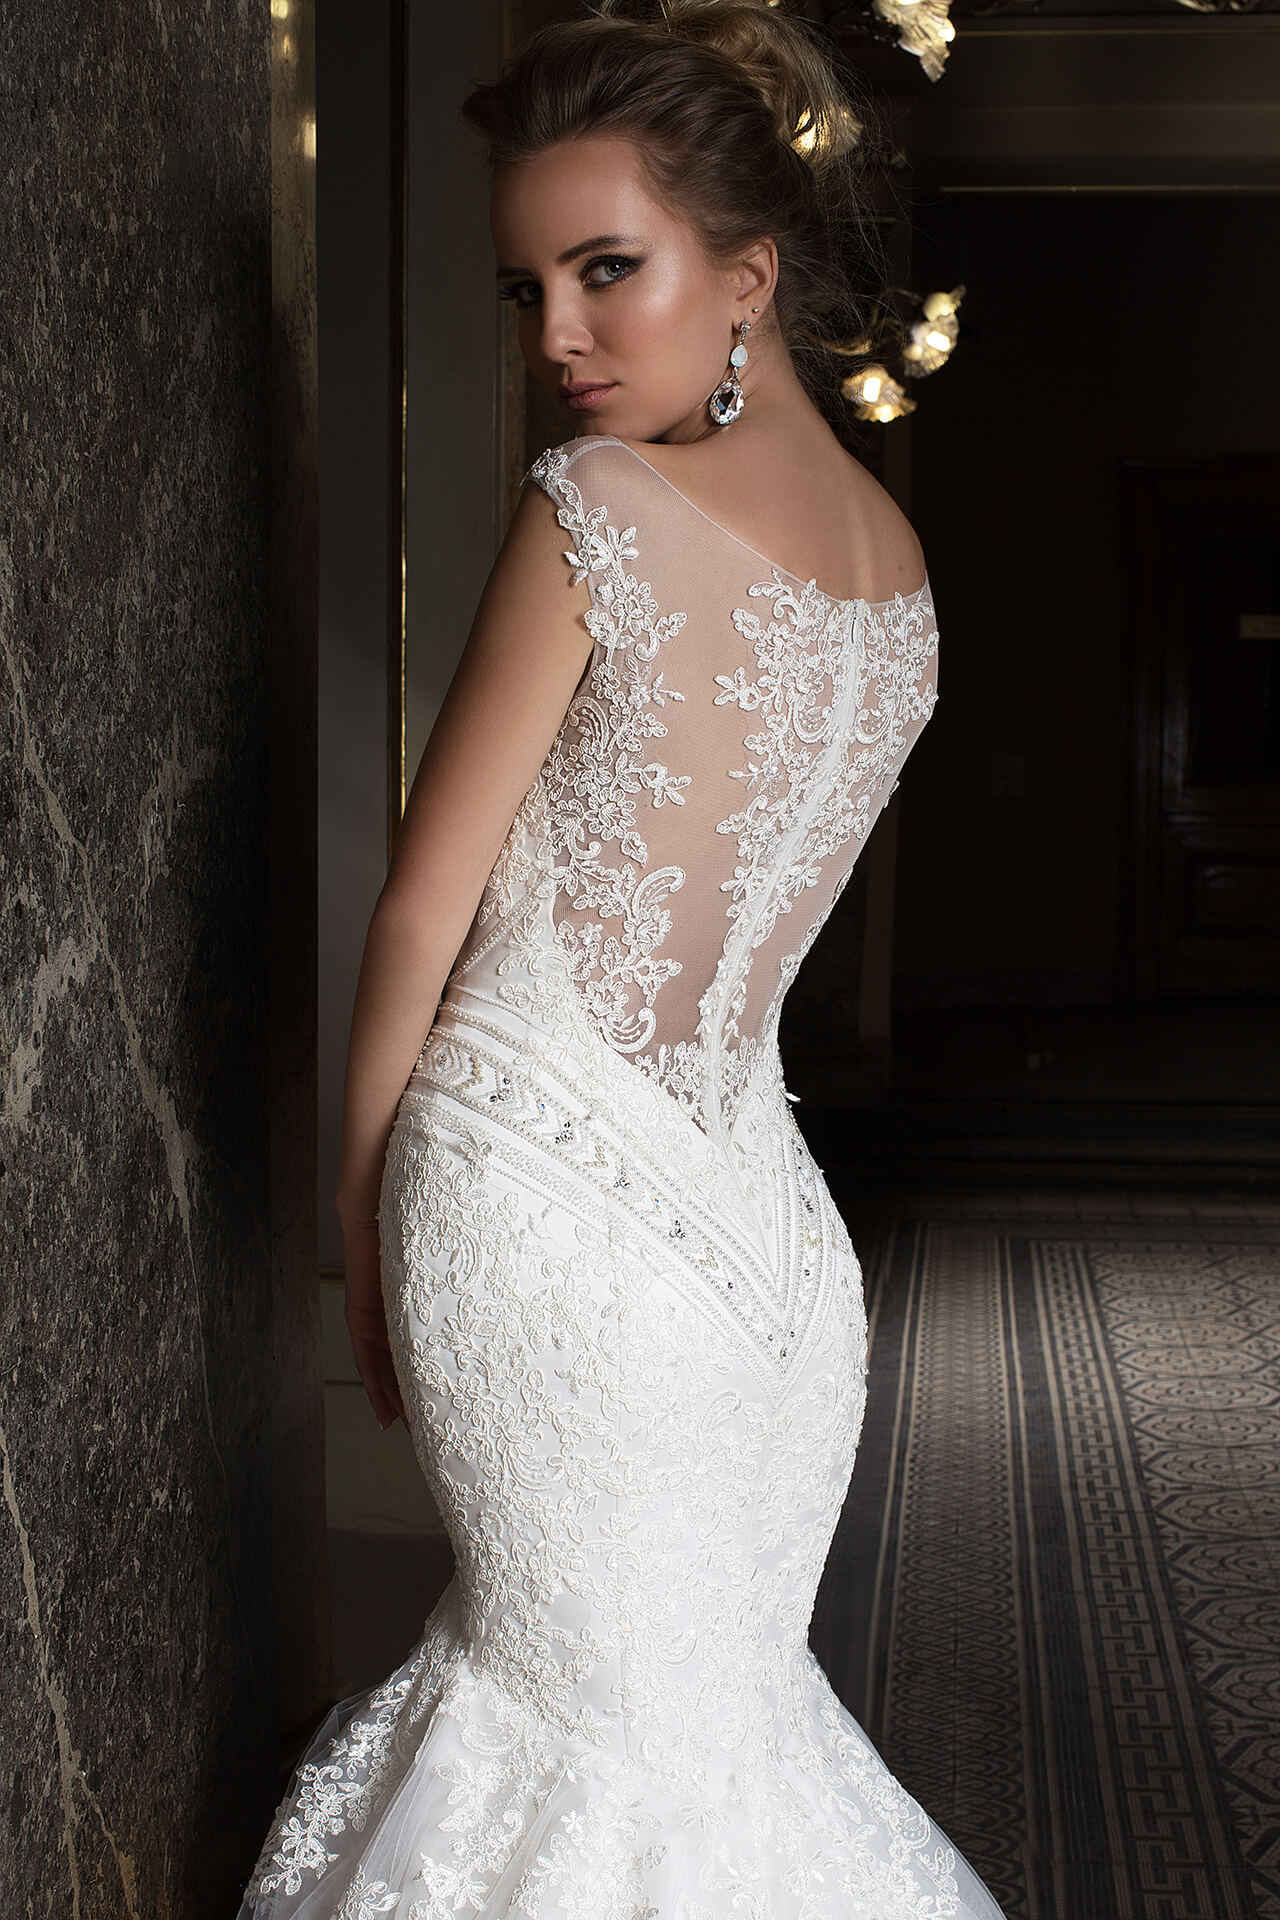 Wedding dresses Anrietta Collection  Supreme Classic  Silhouette  Mermaid  Color  Ivory  Neckline  Sweetheart  Illusion  Sleeves  Wide straps  Train  With train - foto 4